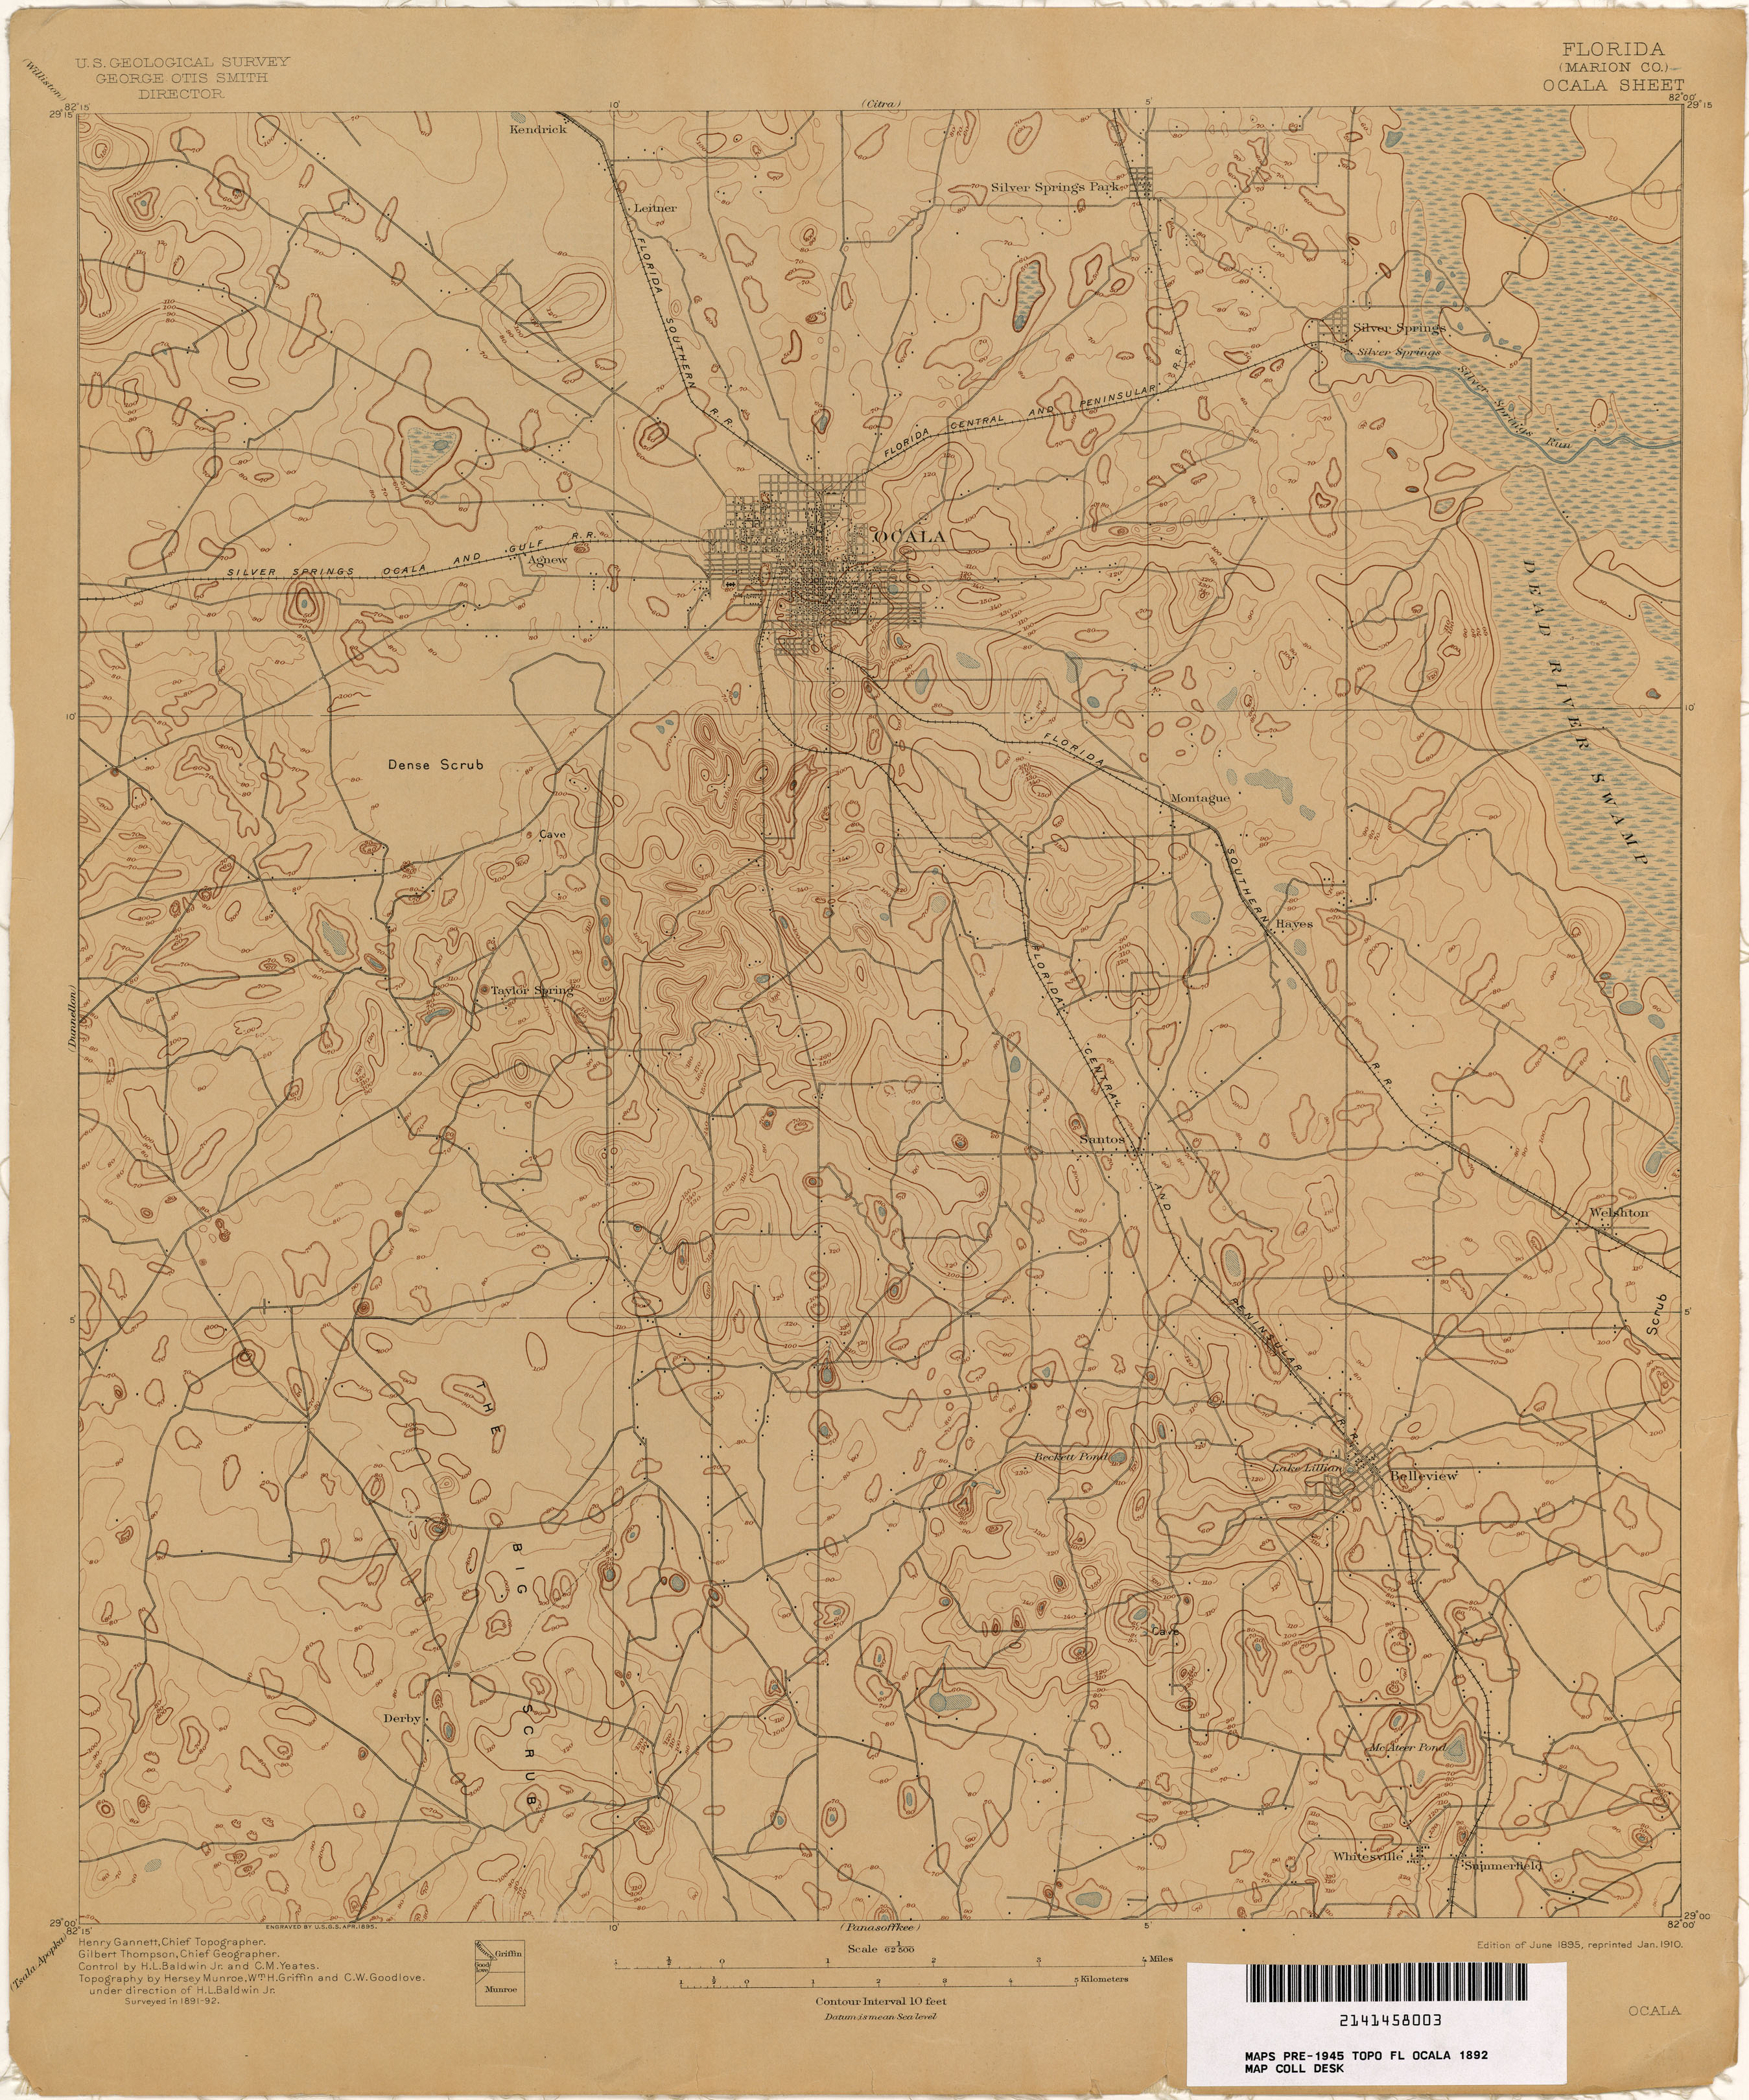 Lake Panasoffkee Florida Map.Florida Historical Topographic Maps Perry Castaneda Map Collection